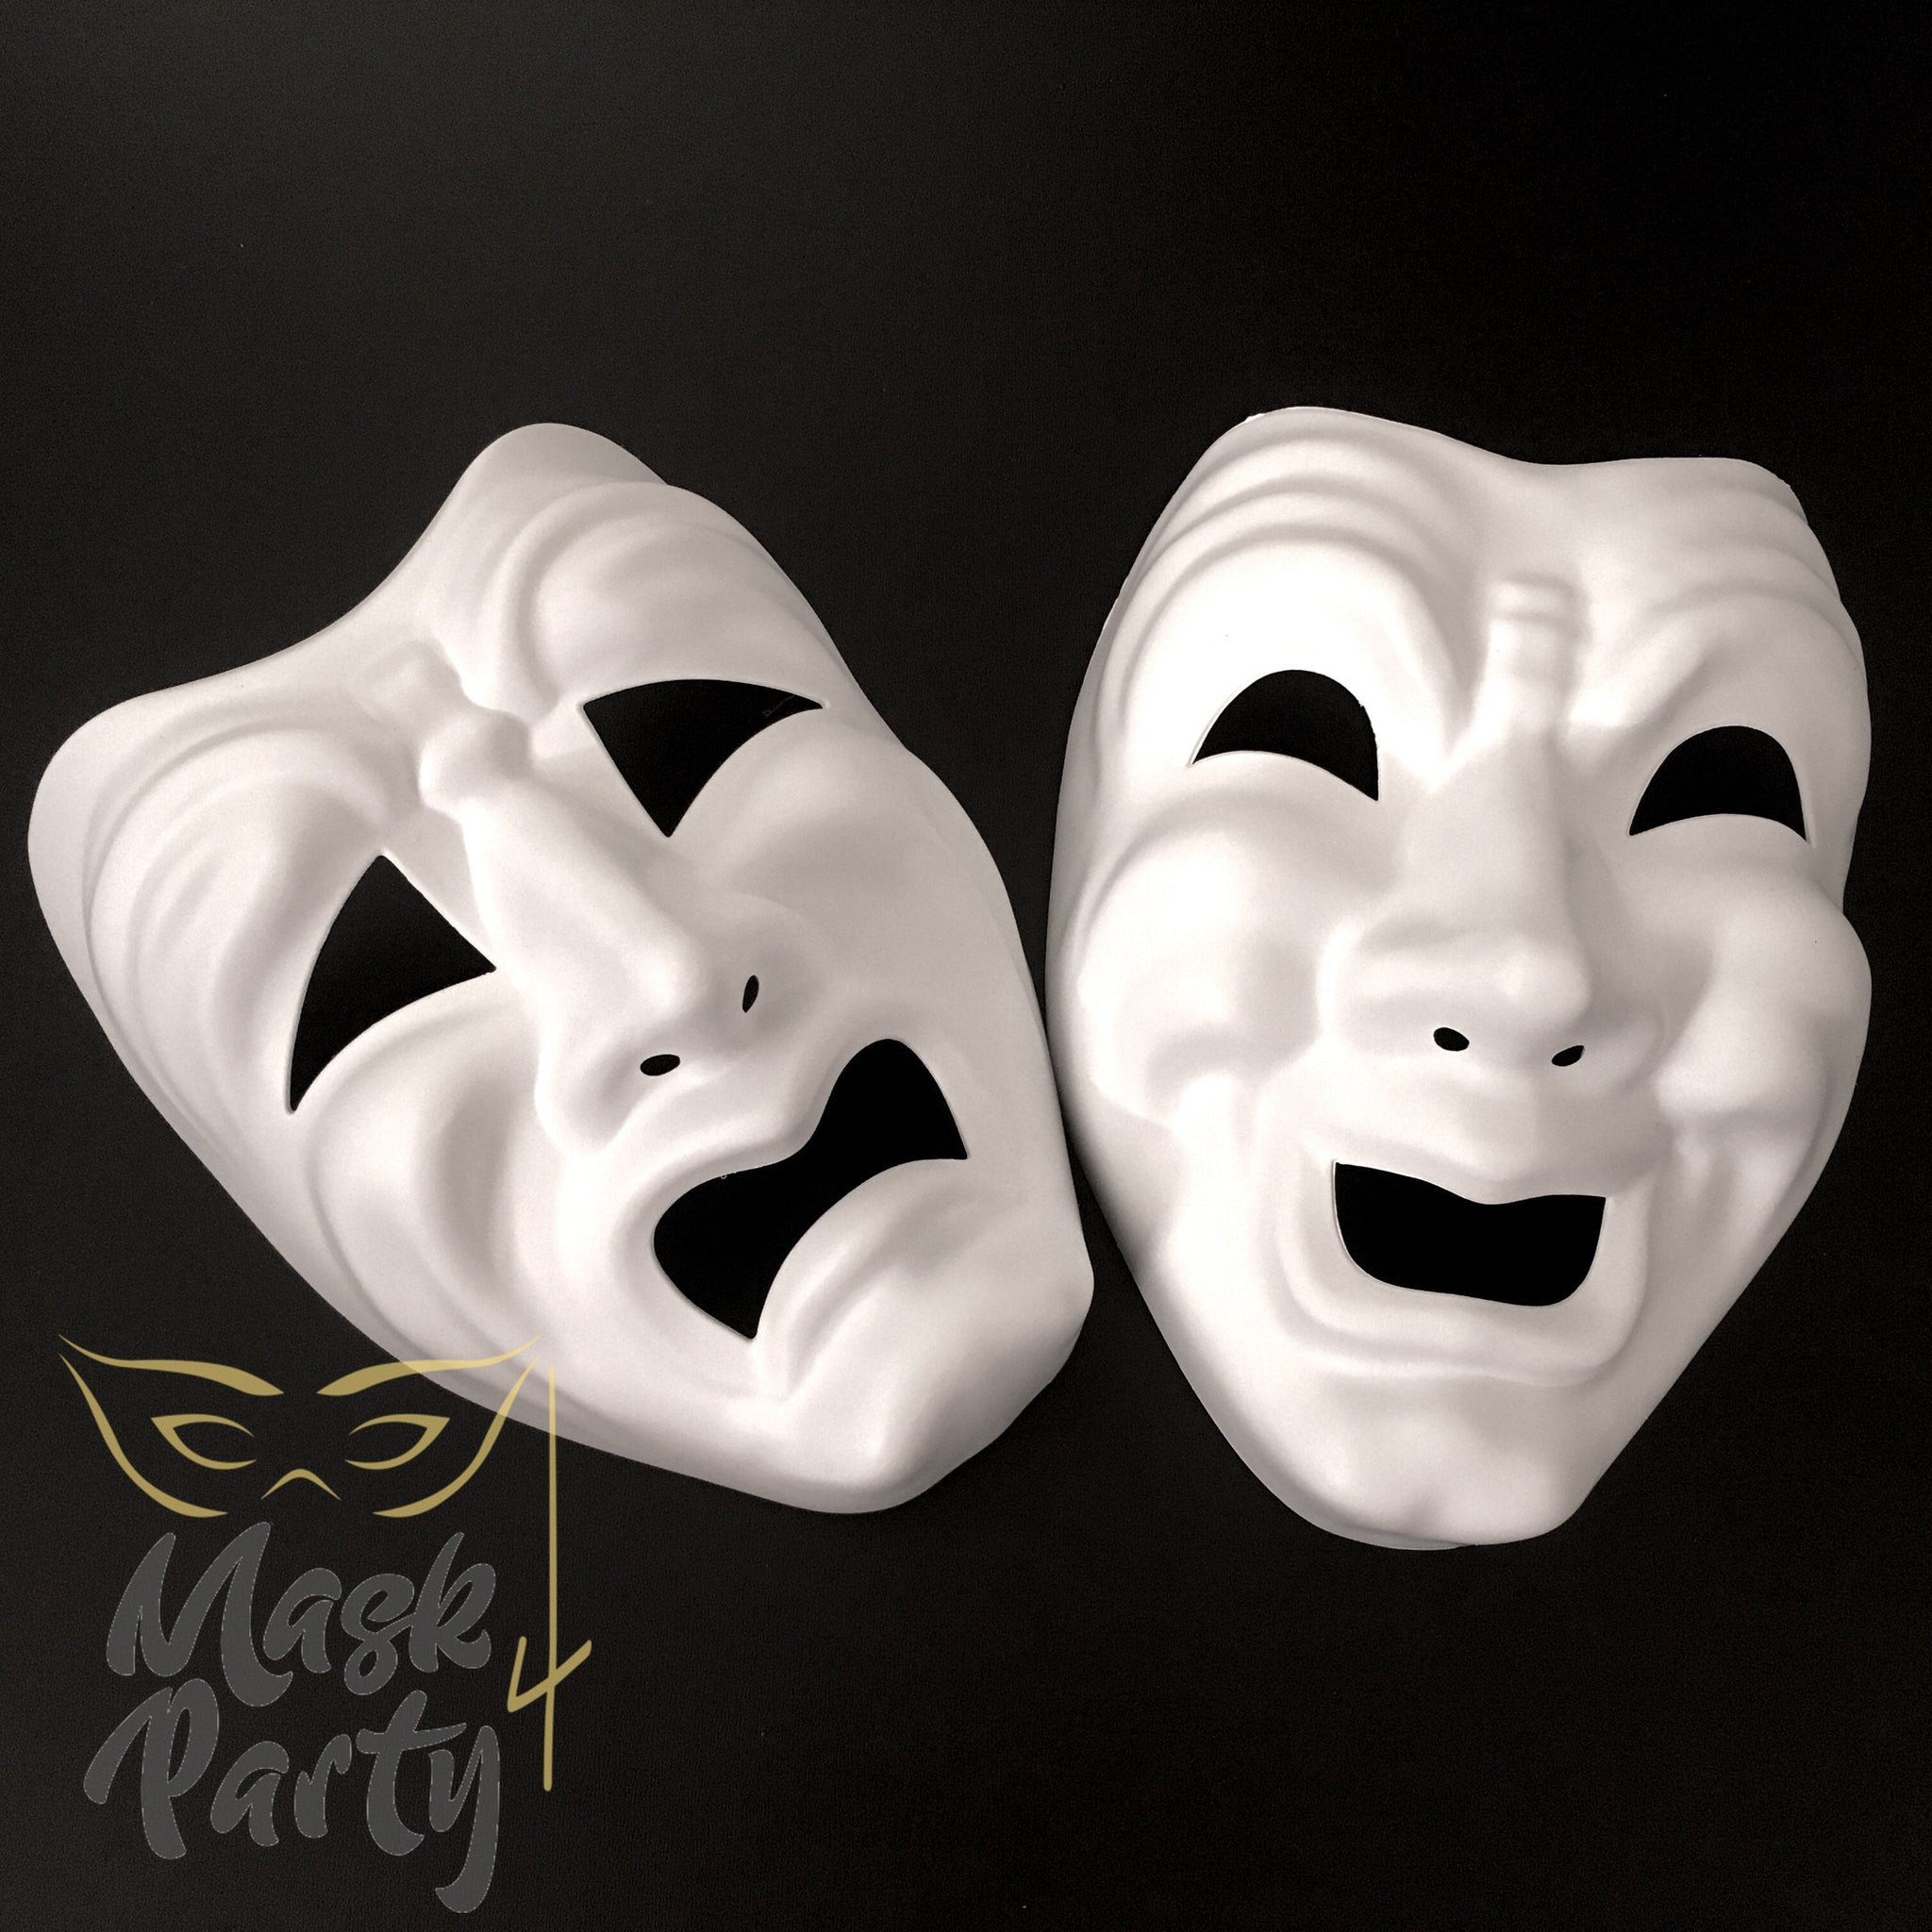 New - Diy - Masquerade -Tragedia/Commedia - White